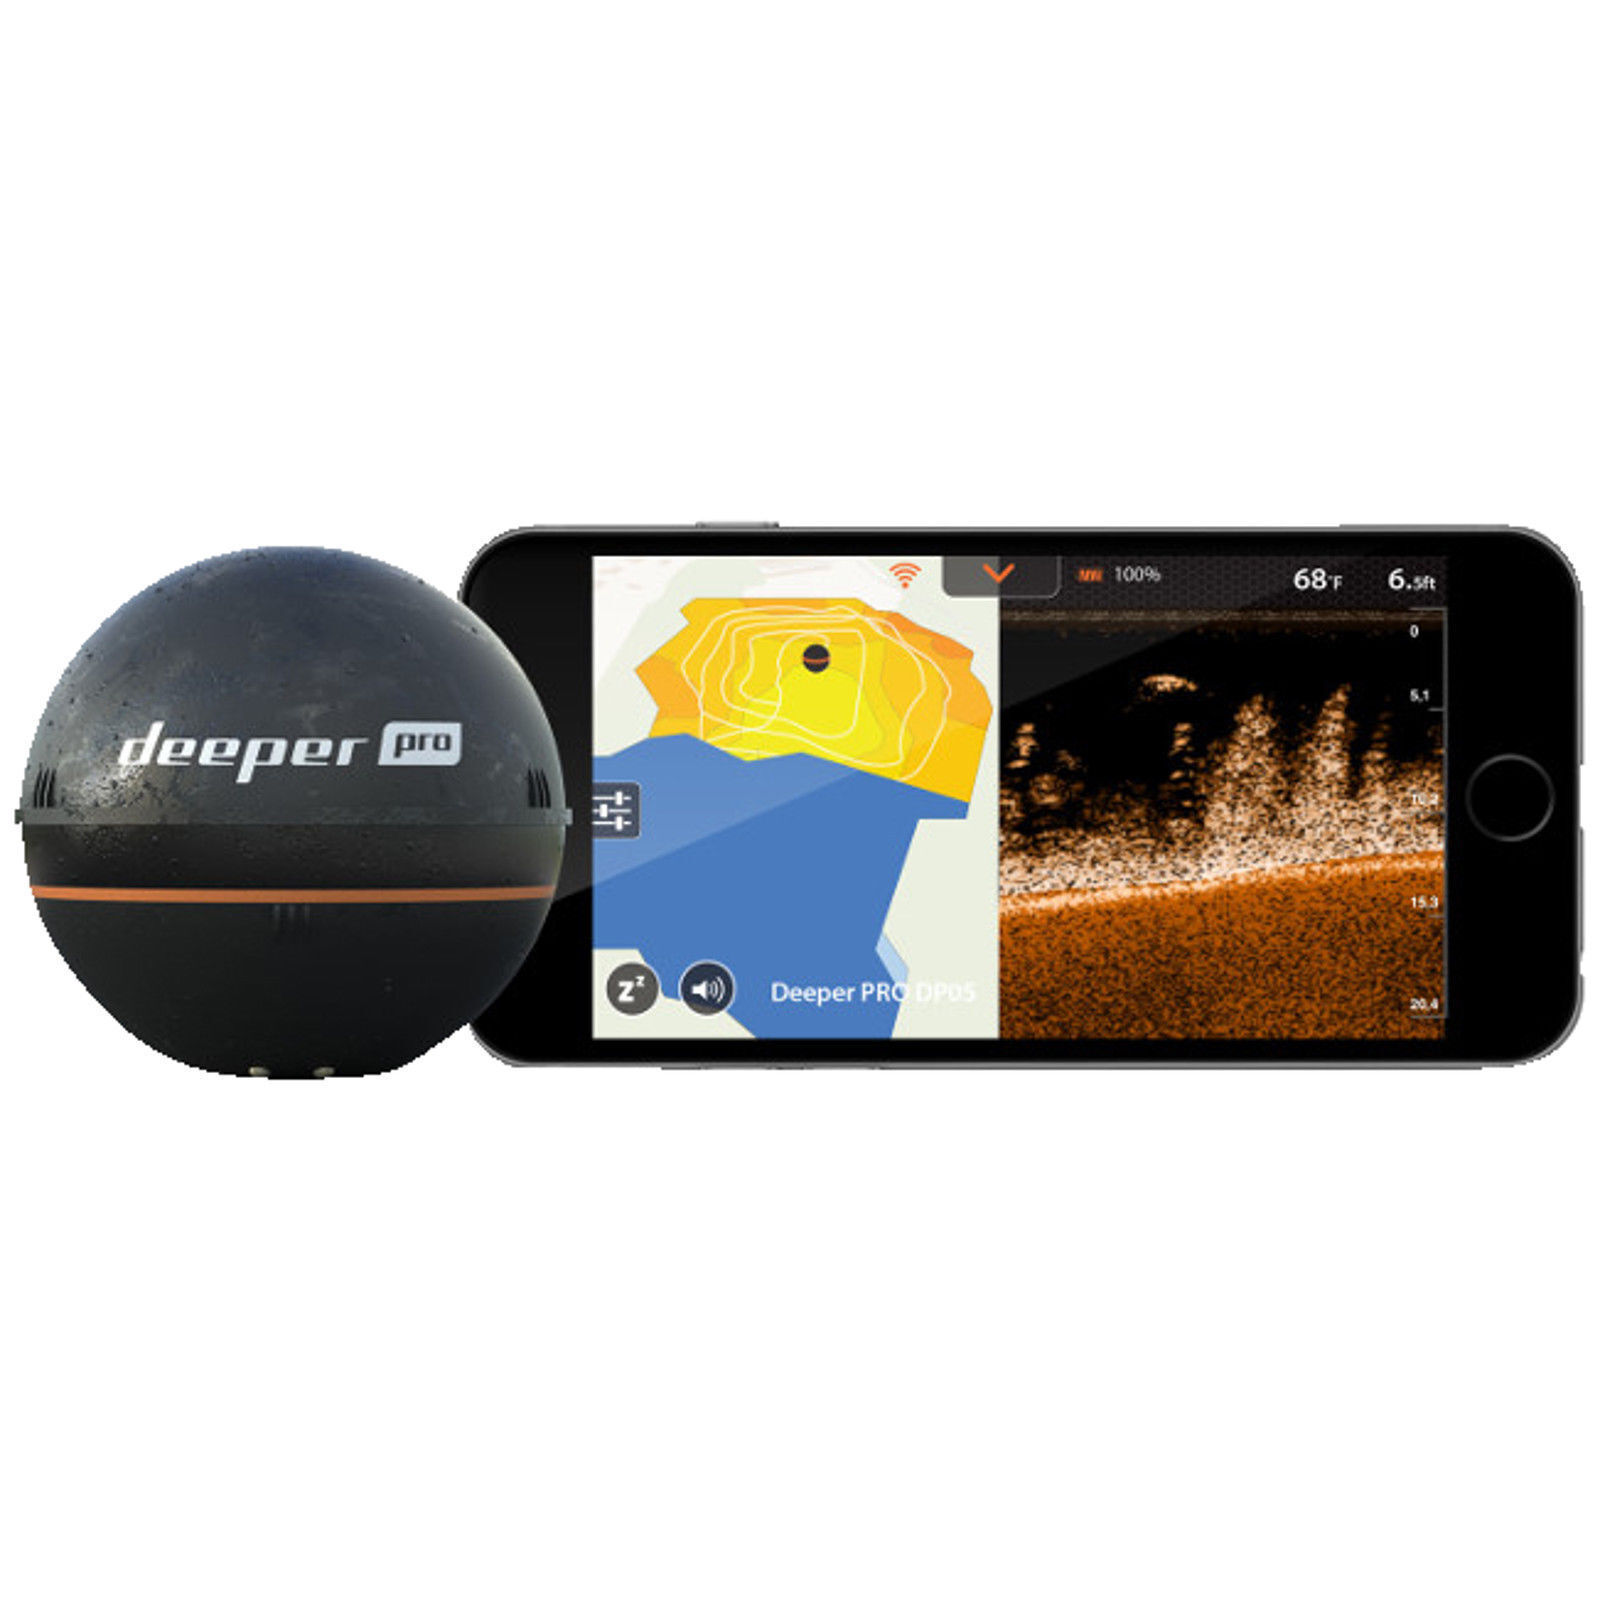 Deeper PRO PLUS ANGEBOT WIFI GPS Smart Sonar +Handy +Handy Sonar Halterung +Night Cover f4c3b7